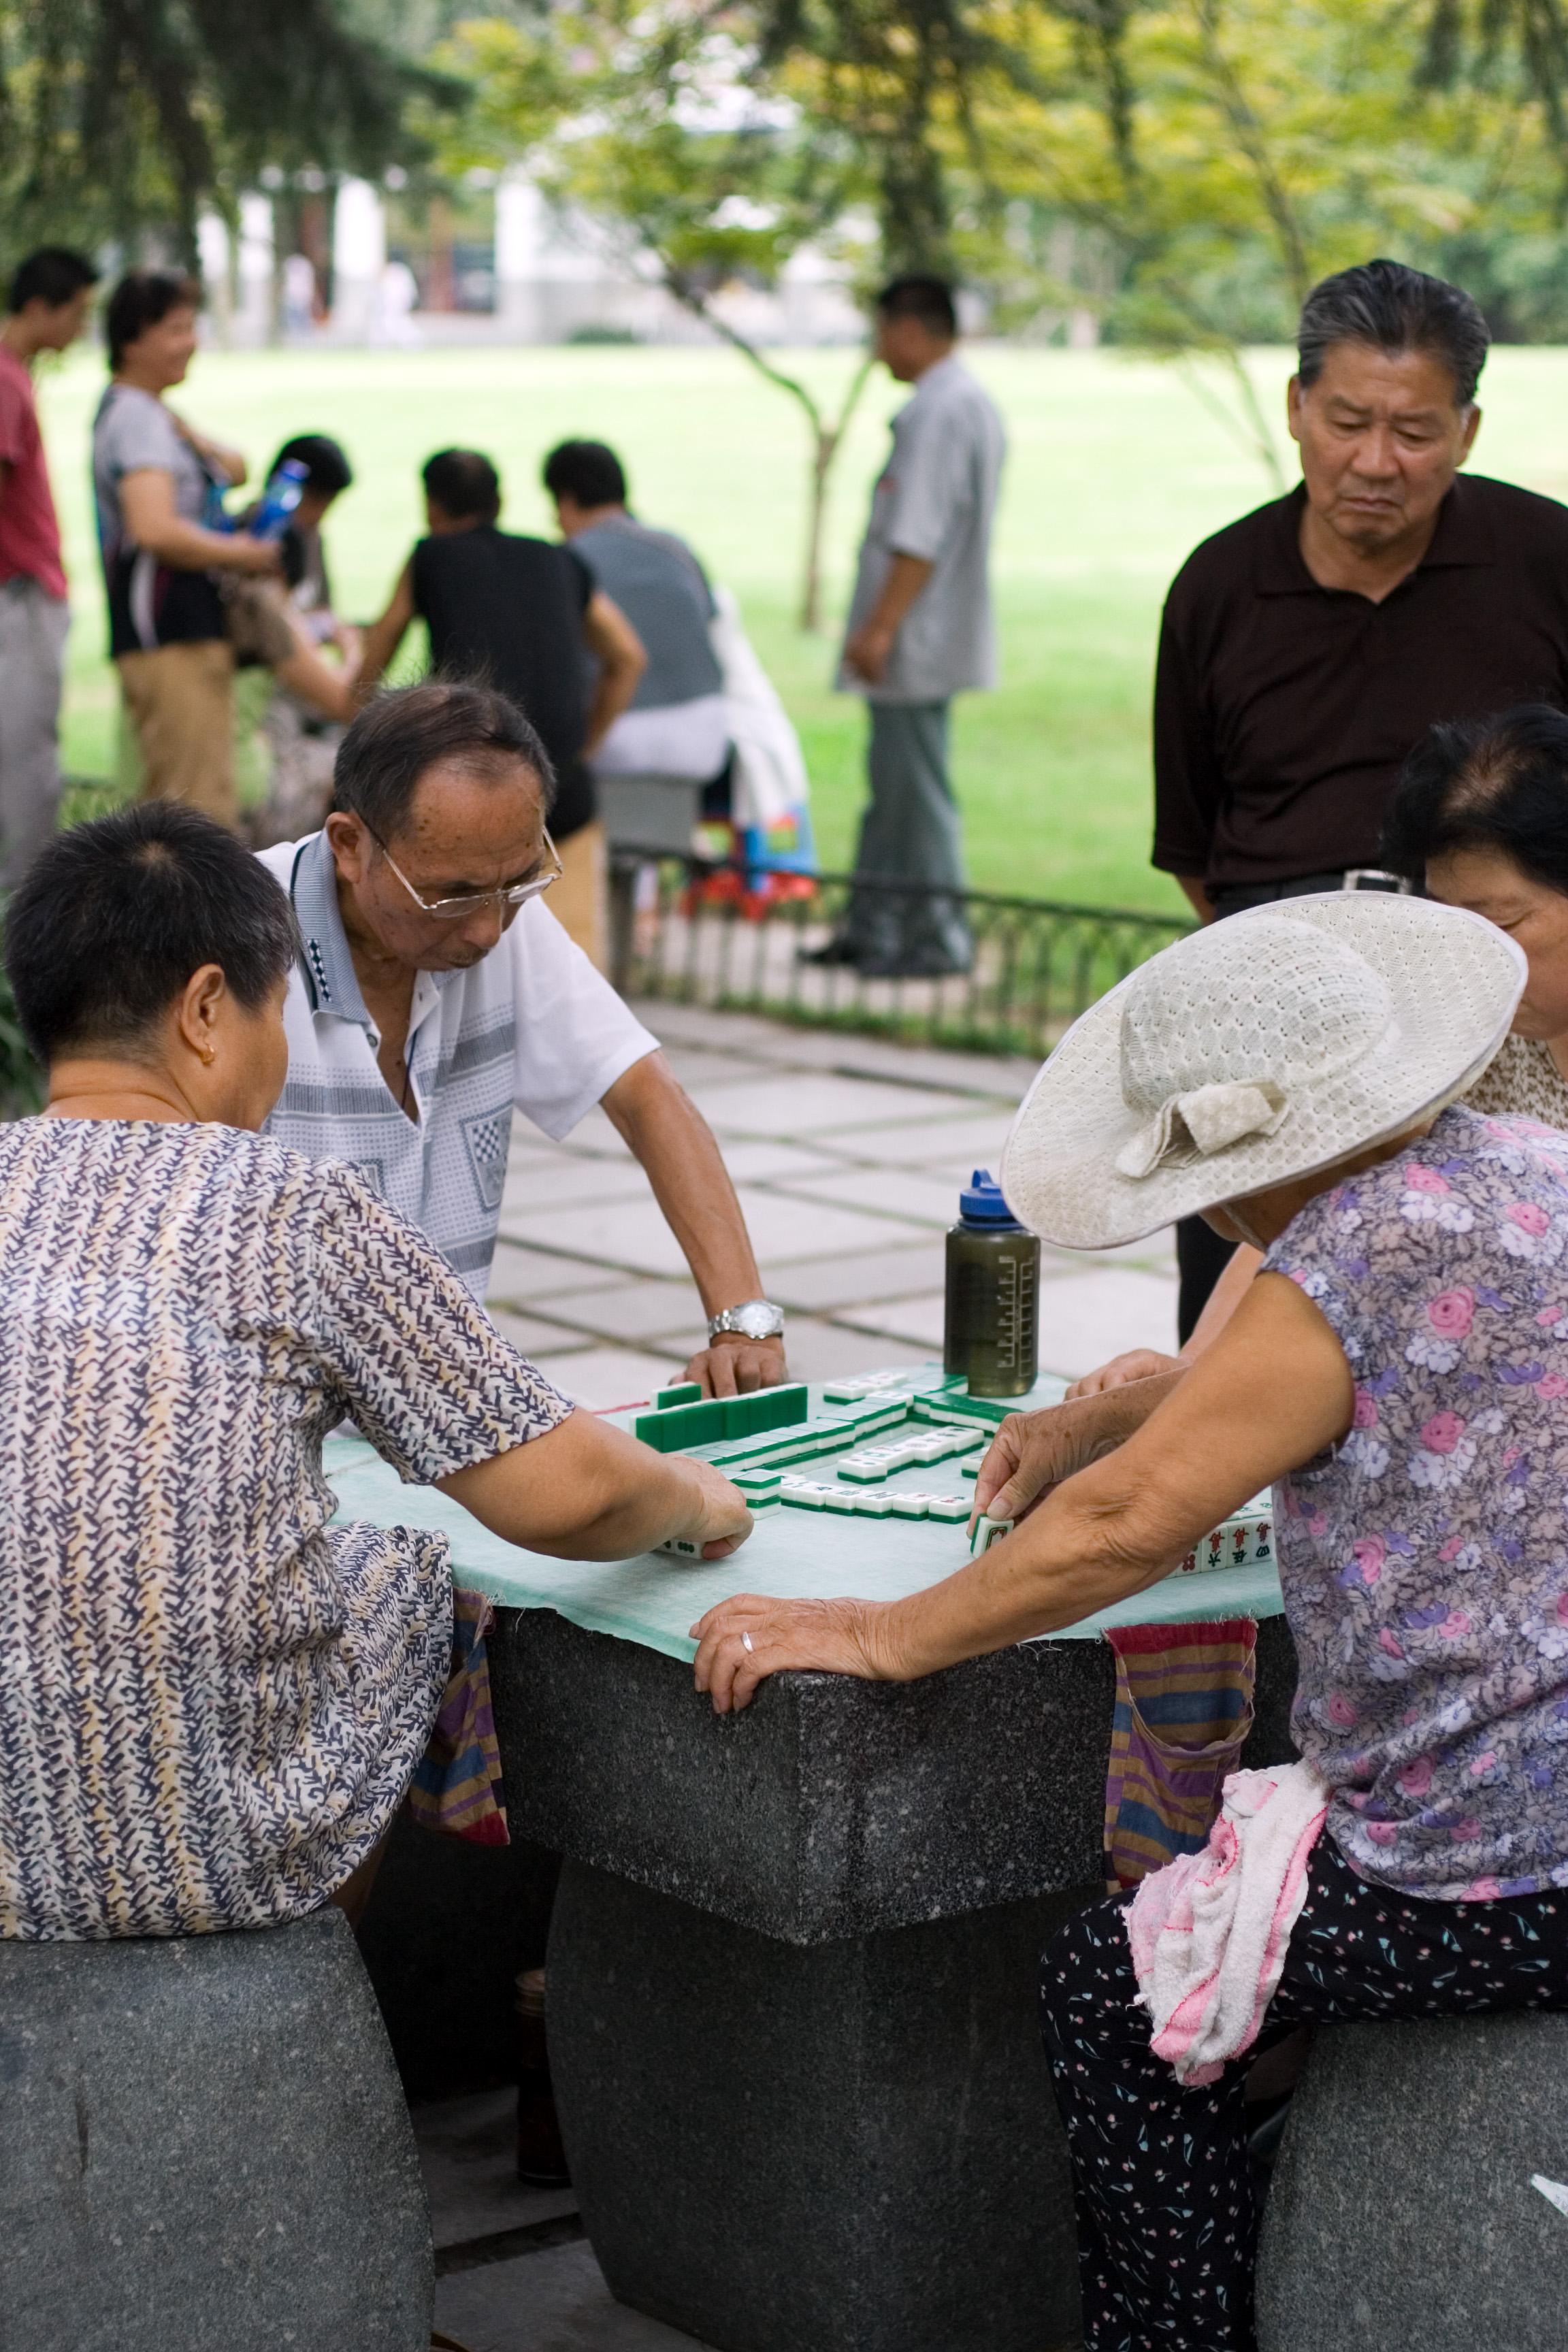 Three player mahjong - Wikipedia